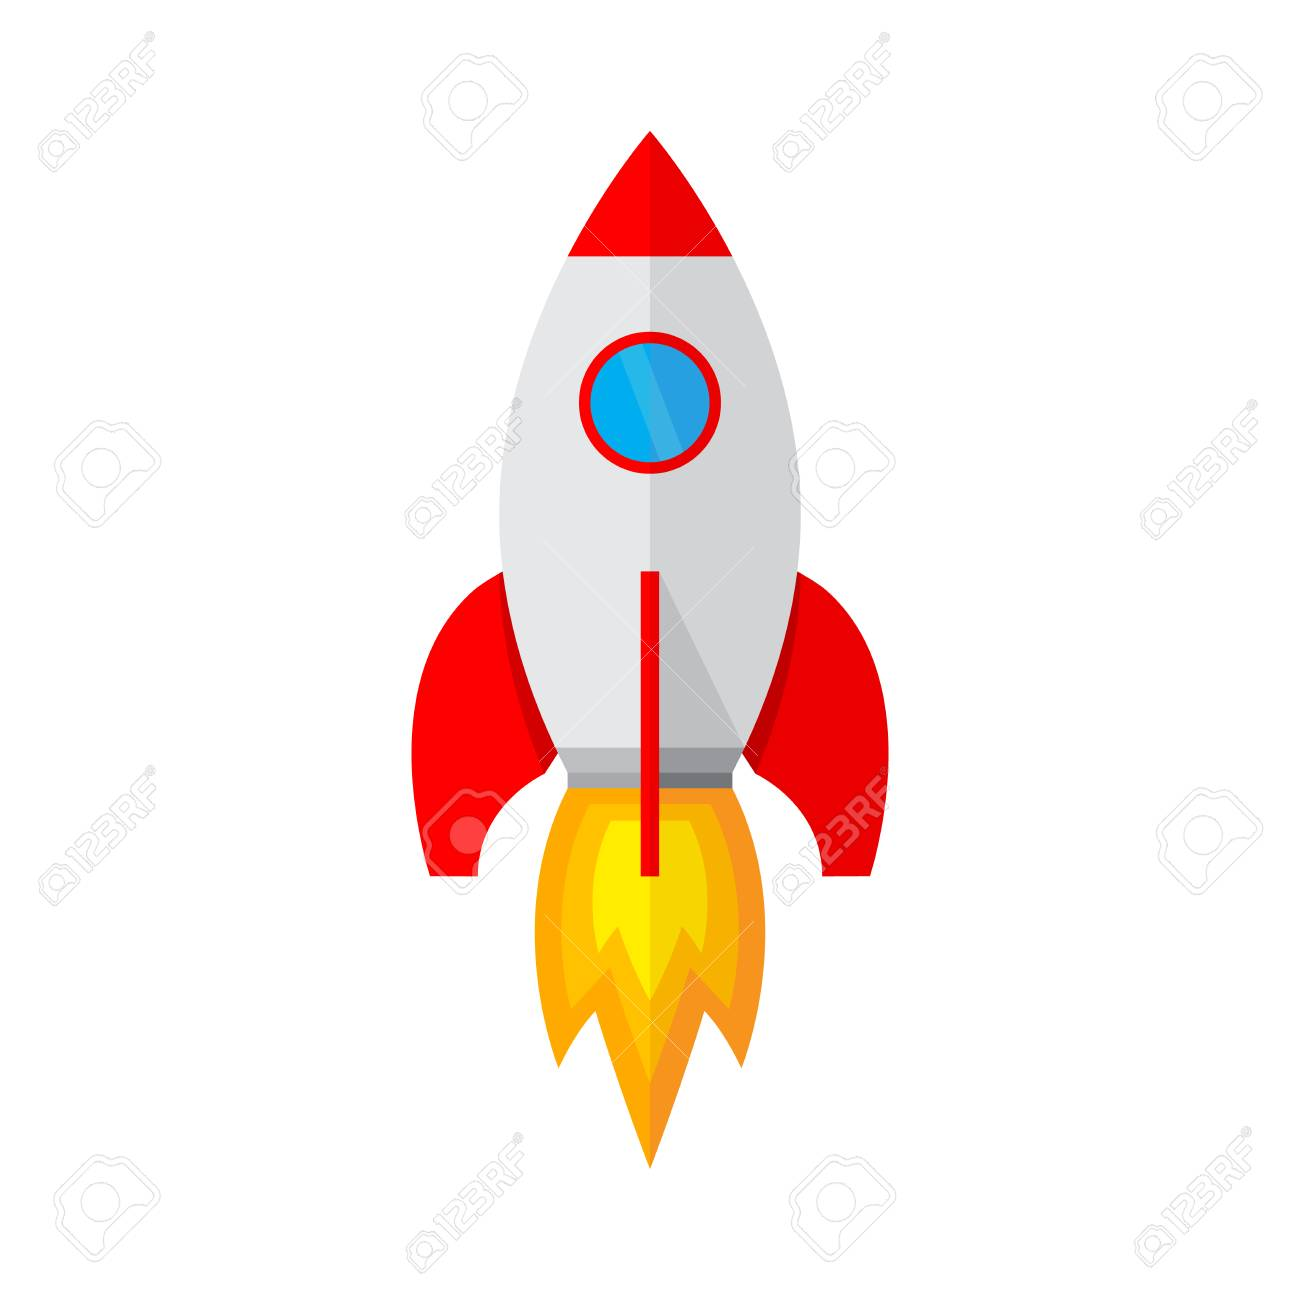 colored rocket ship icon in flat design simple spaceship icon rh 123rf com spaceship vector ai spaceship vector png